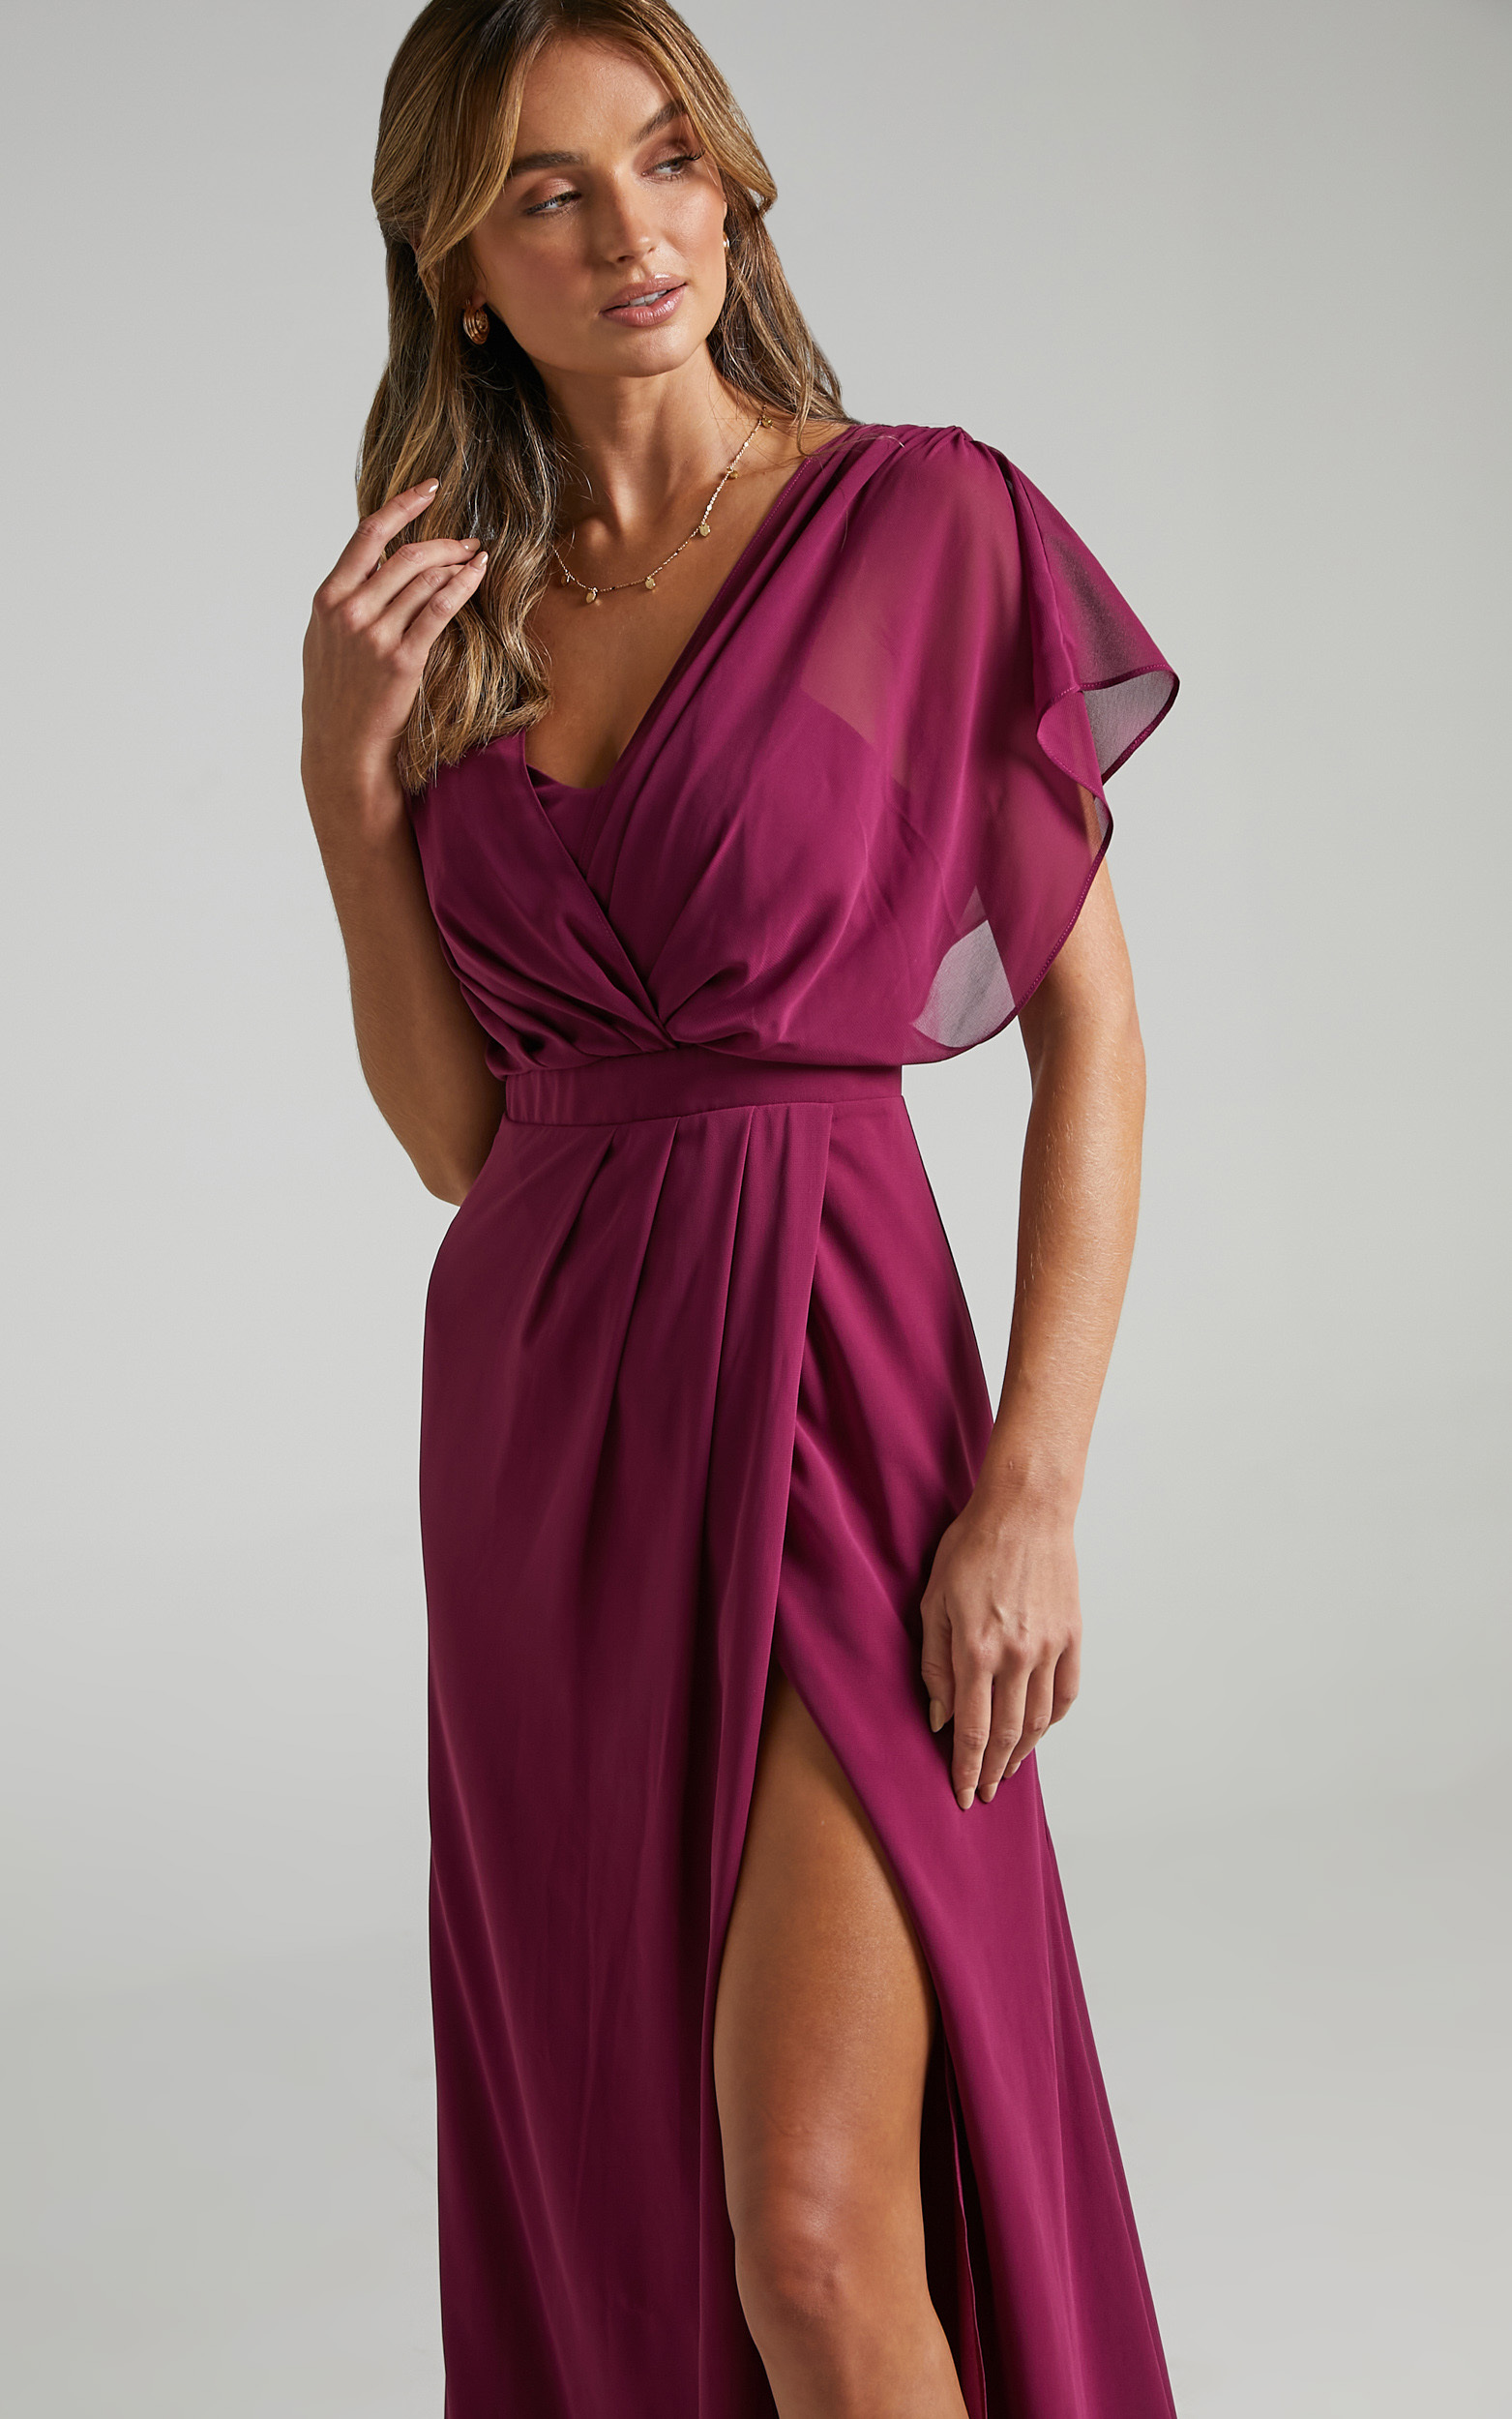 Lovers Gaze Dress in Mulberry - 06, PRP2, hi-res image number null